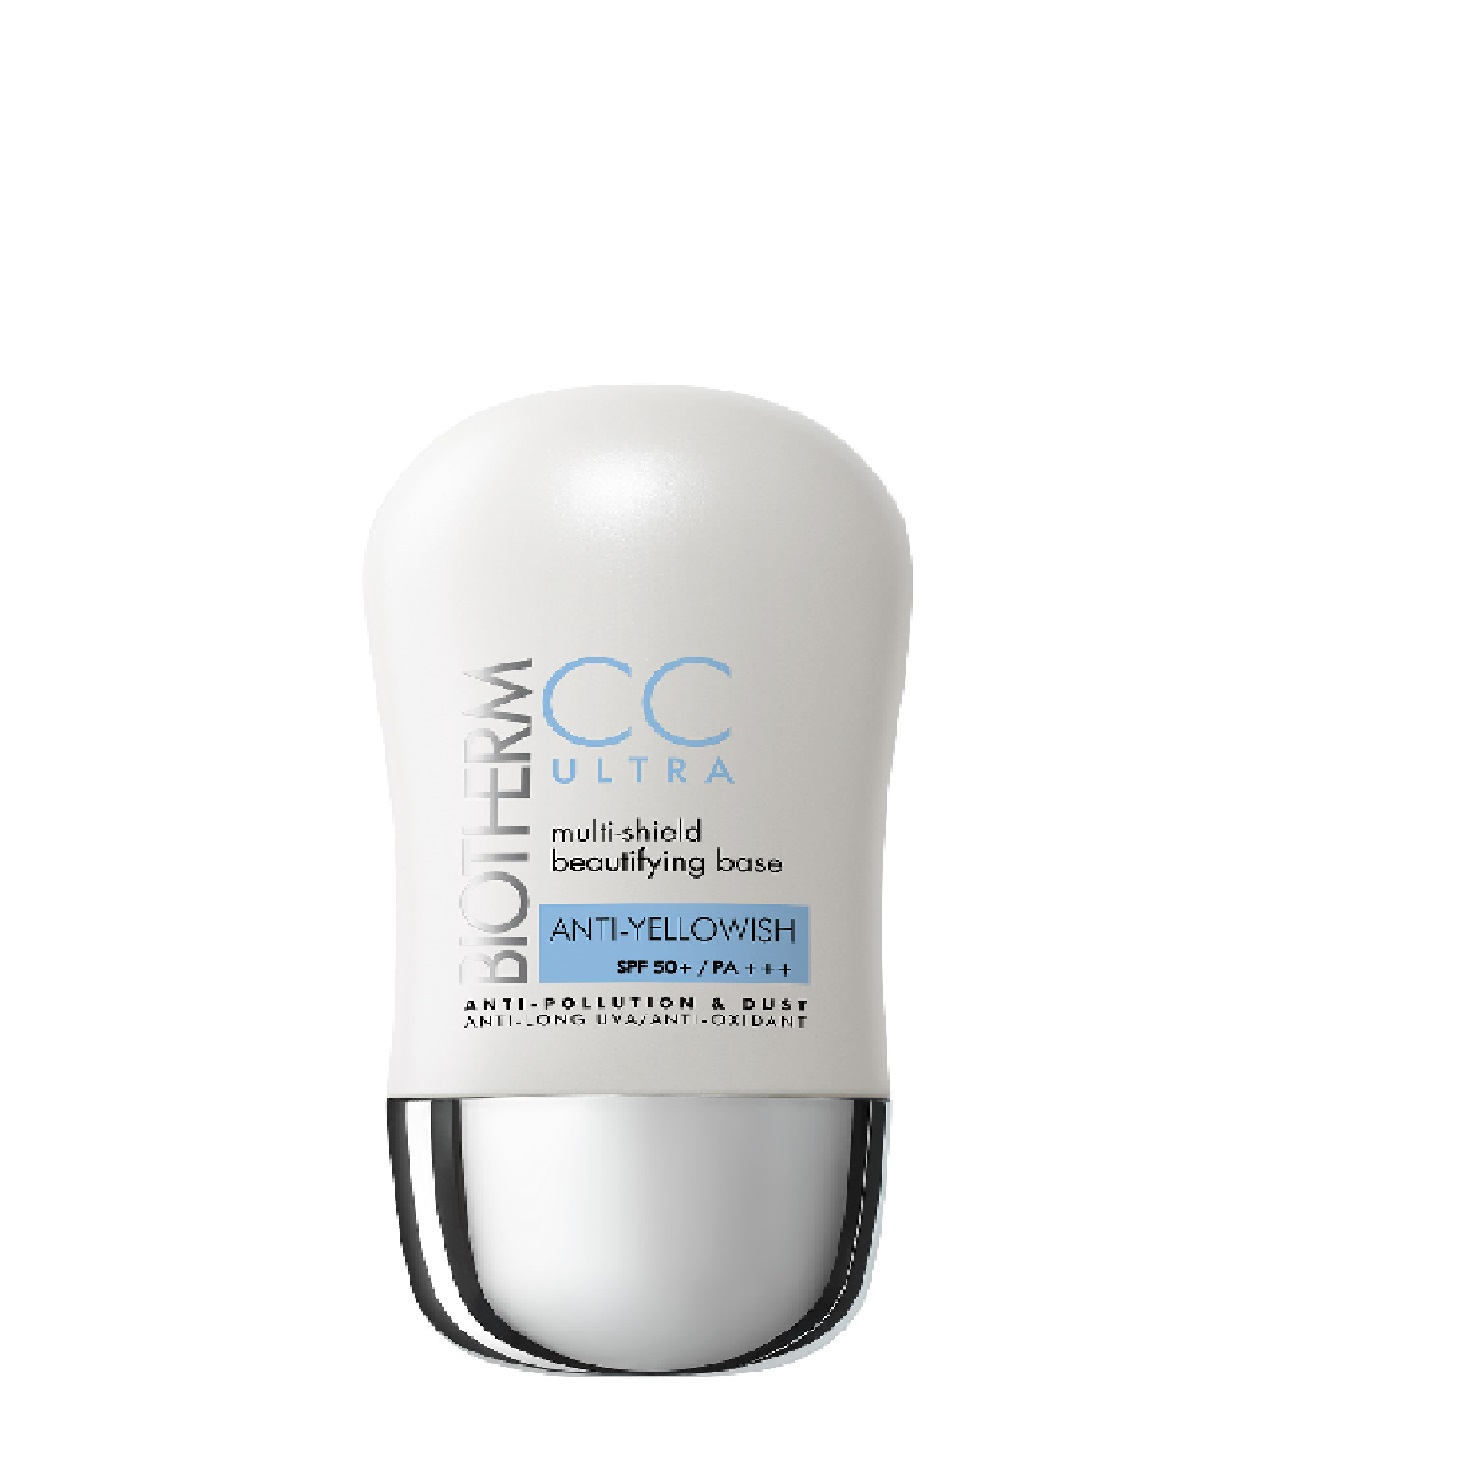 CC ULTRA CC CREAM ANTI YELLOWNESS